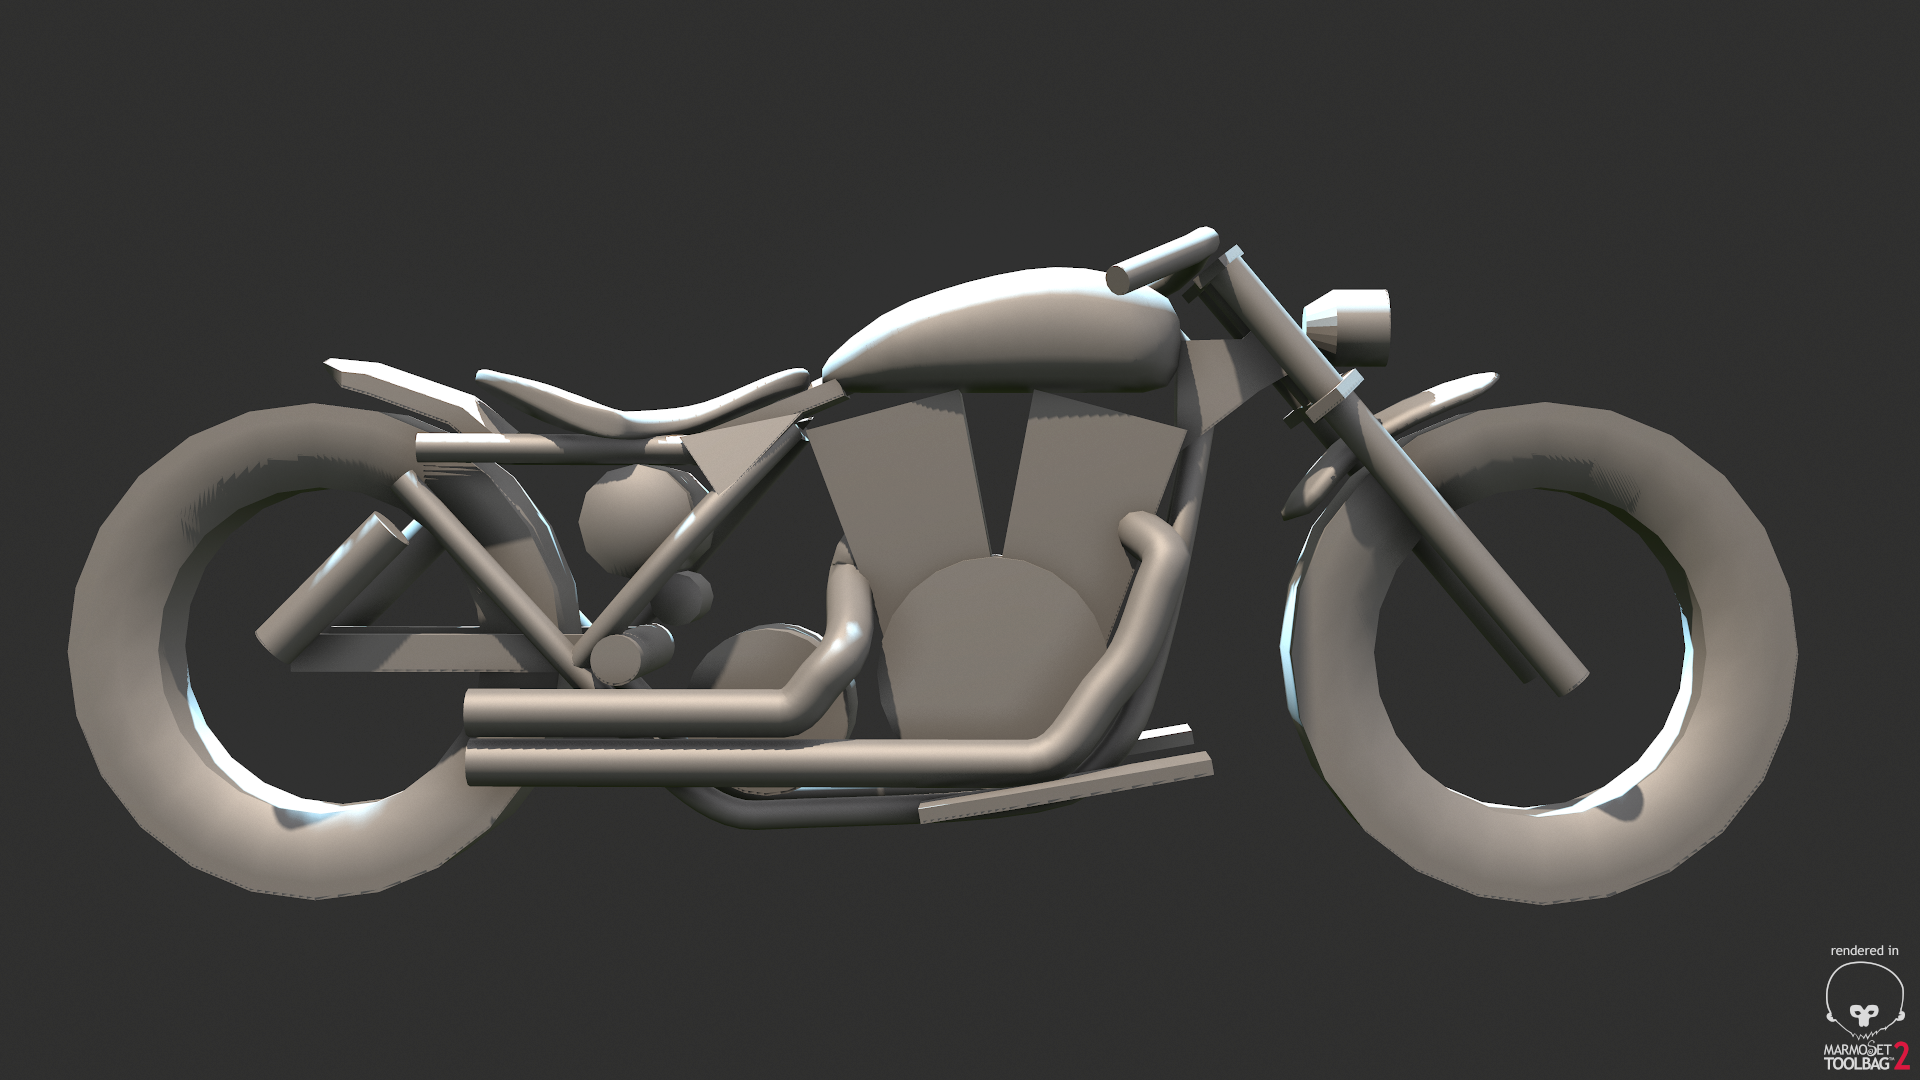 wip_bobber_blockout_02_by_bit_winchester-d7nuq4e.png